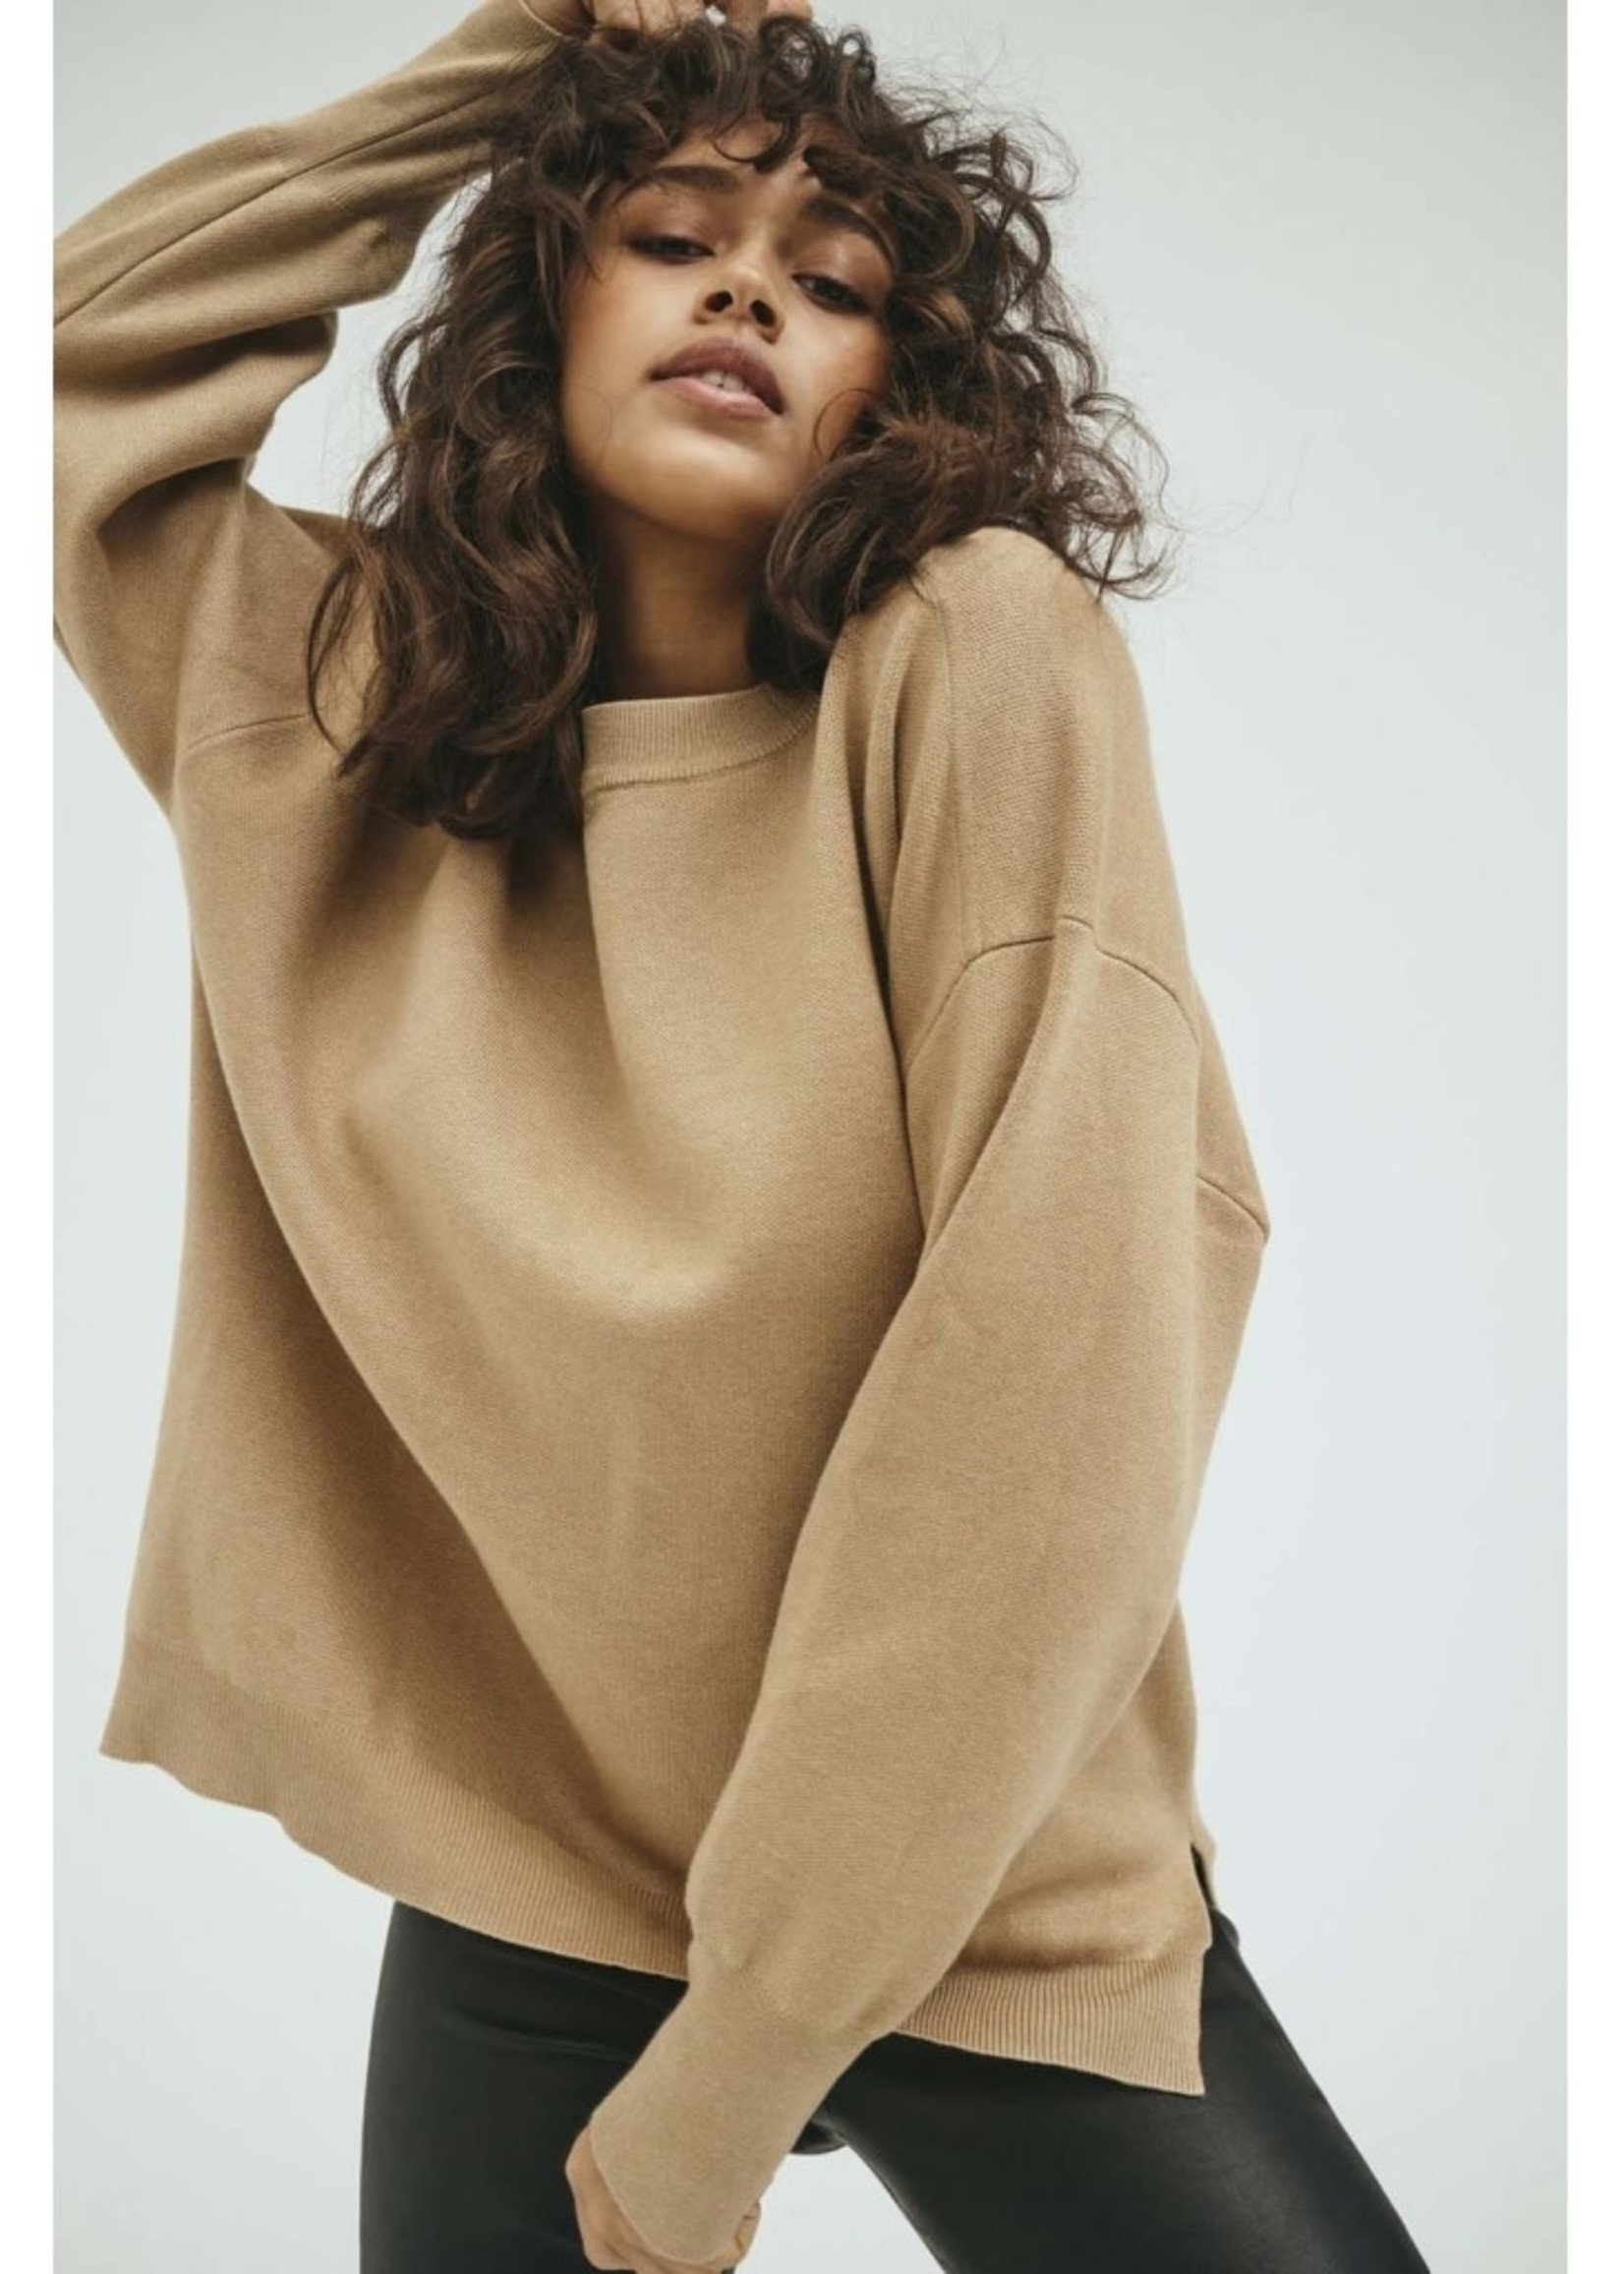 Norr  Als Oversized knit top